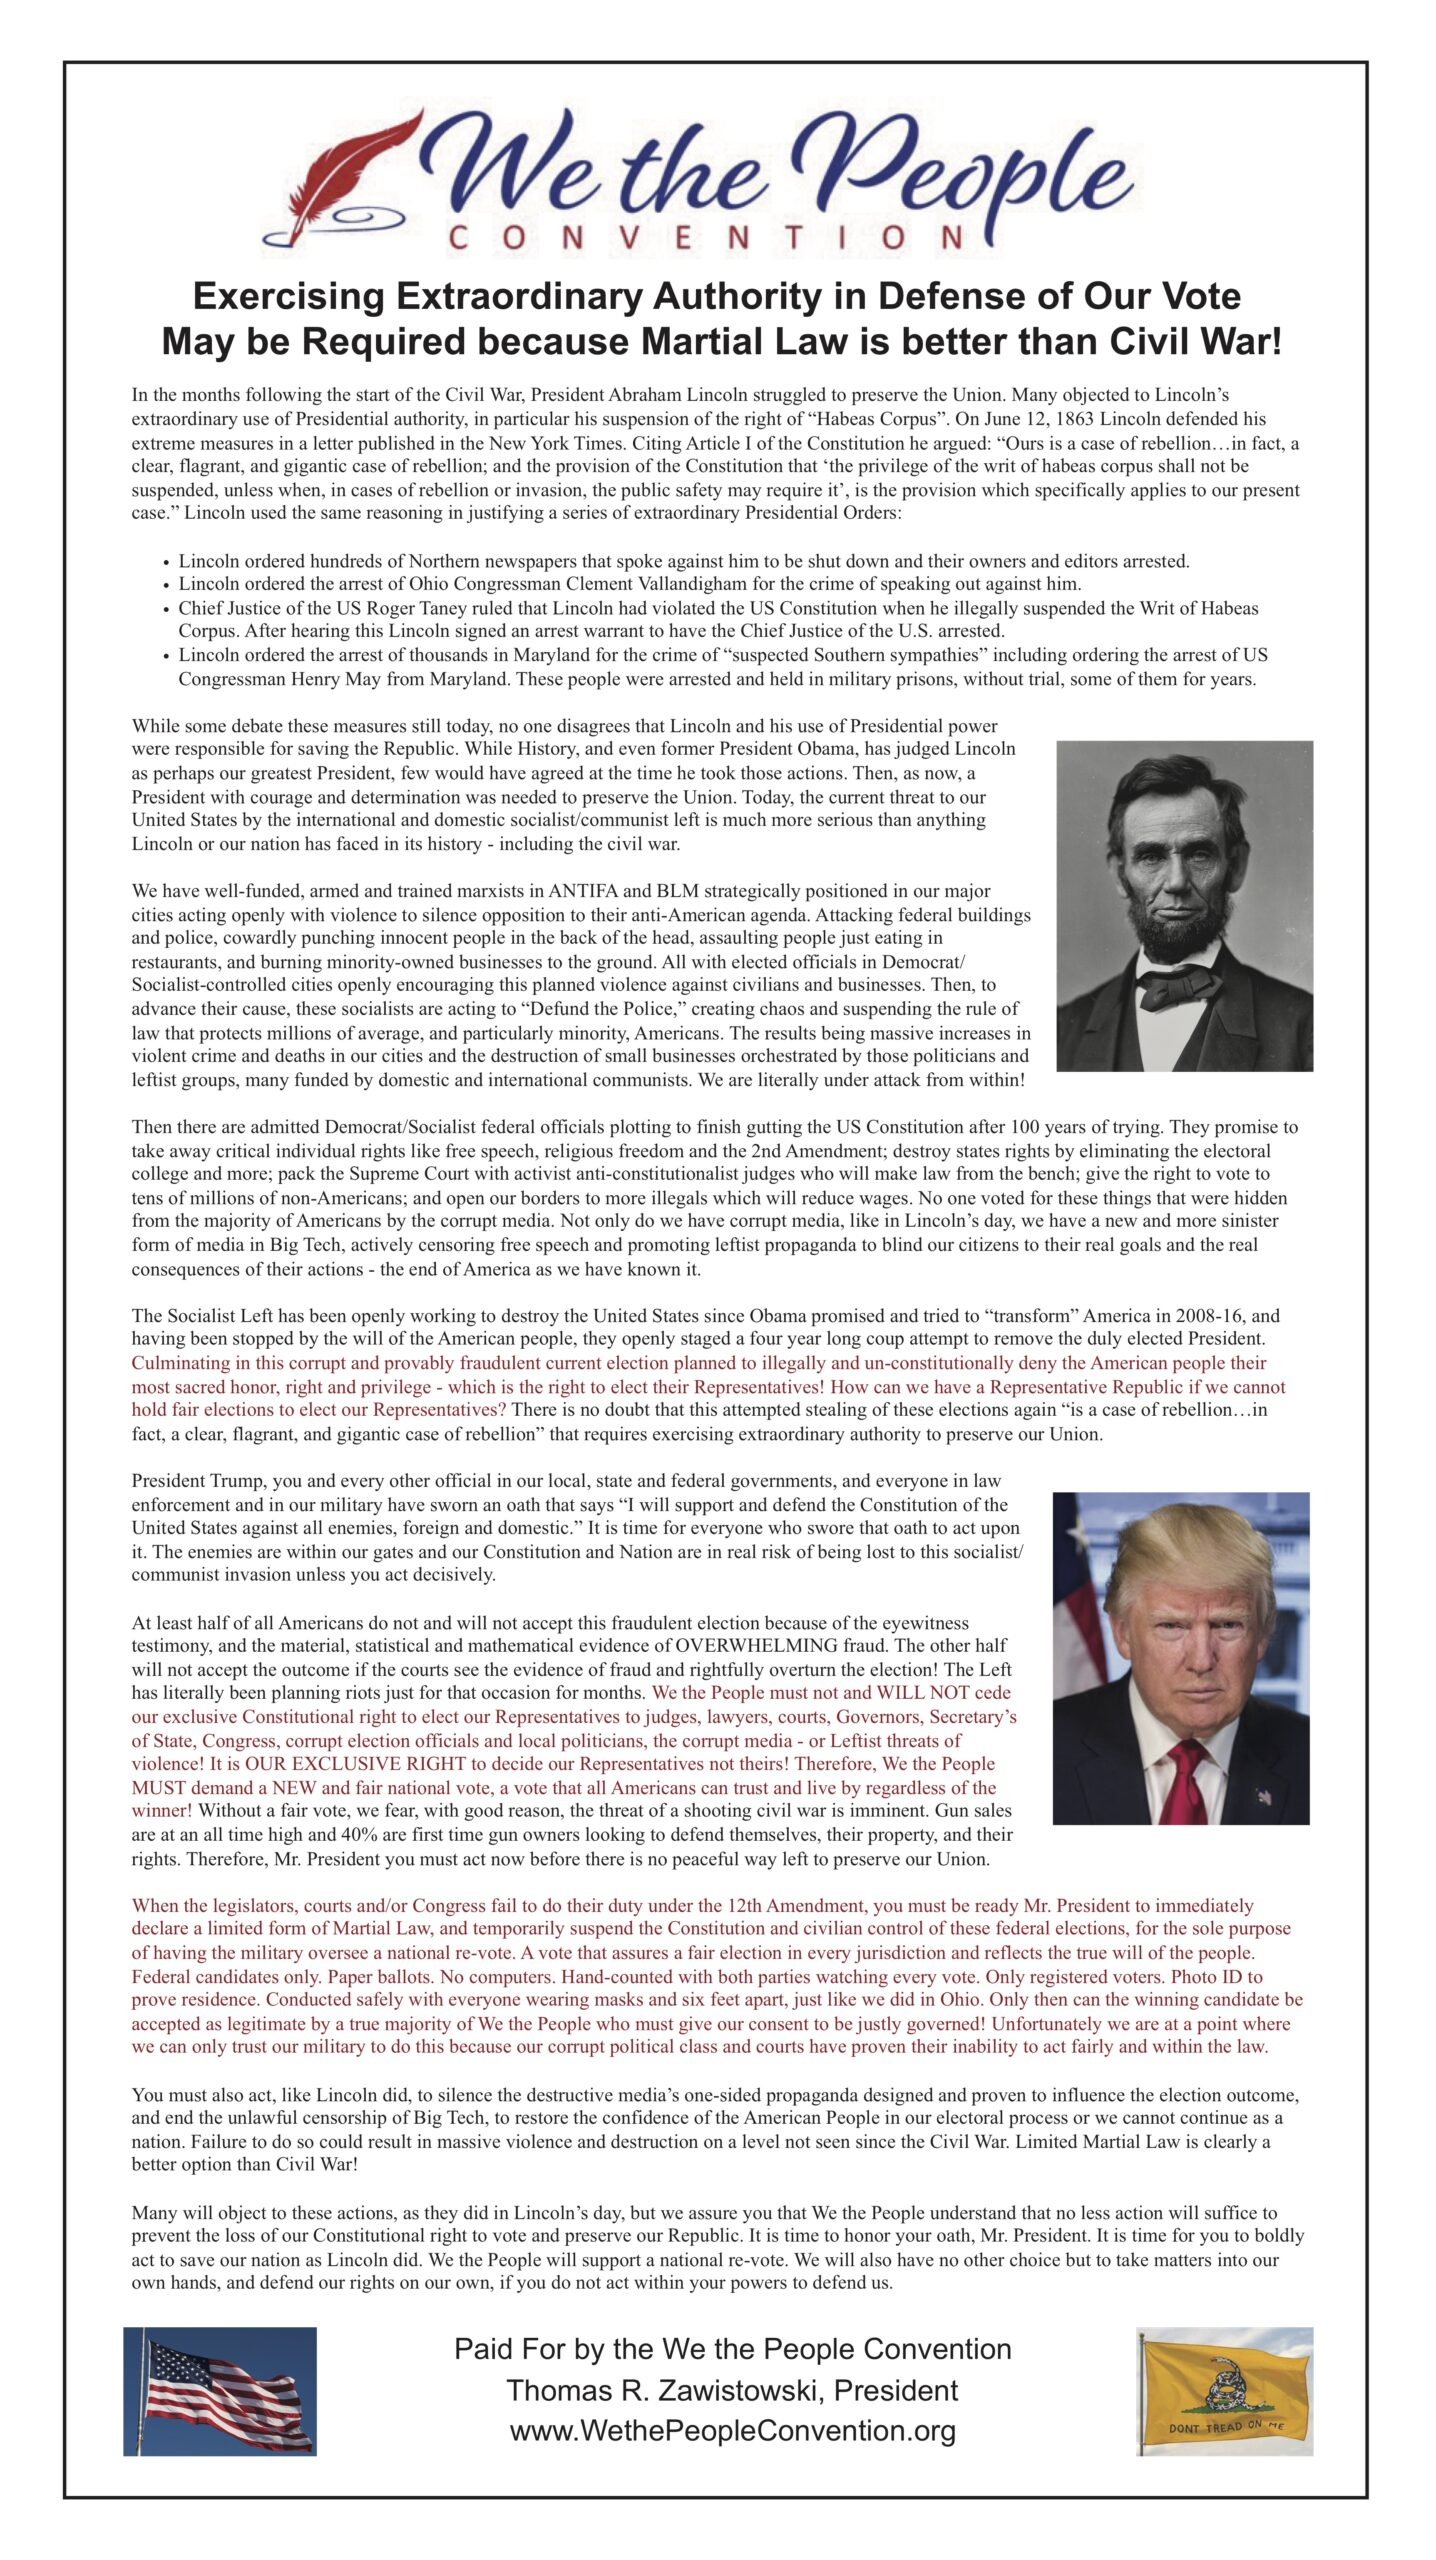 We The People Convention Washington Times Ad